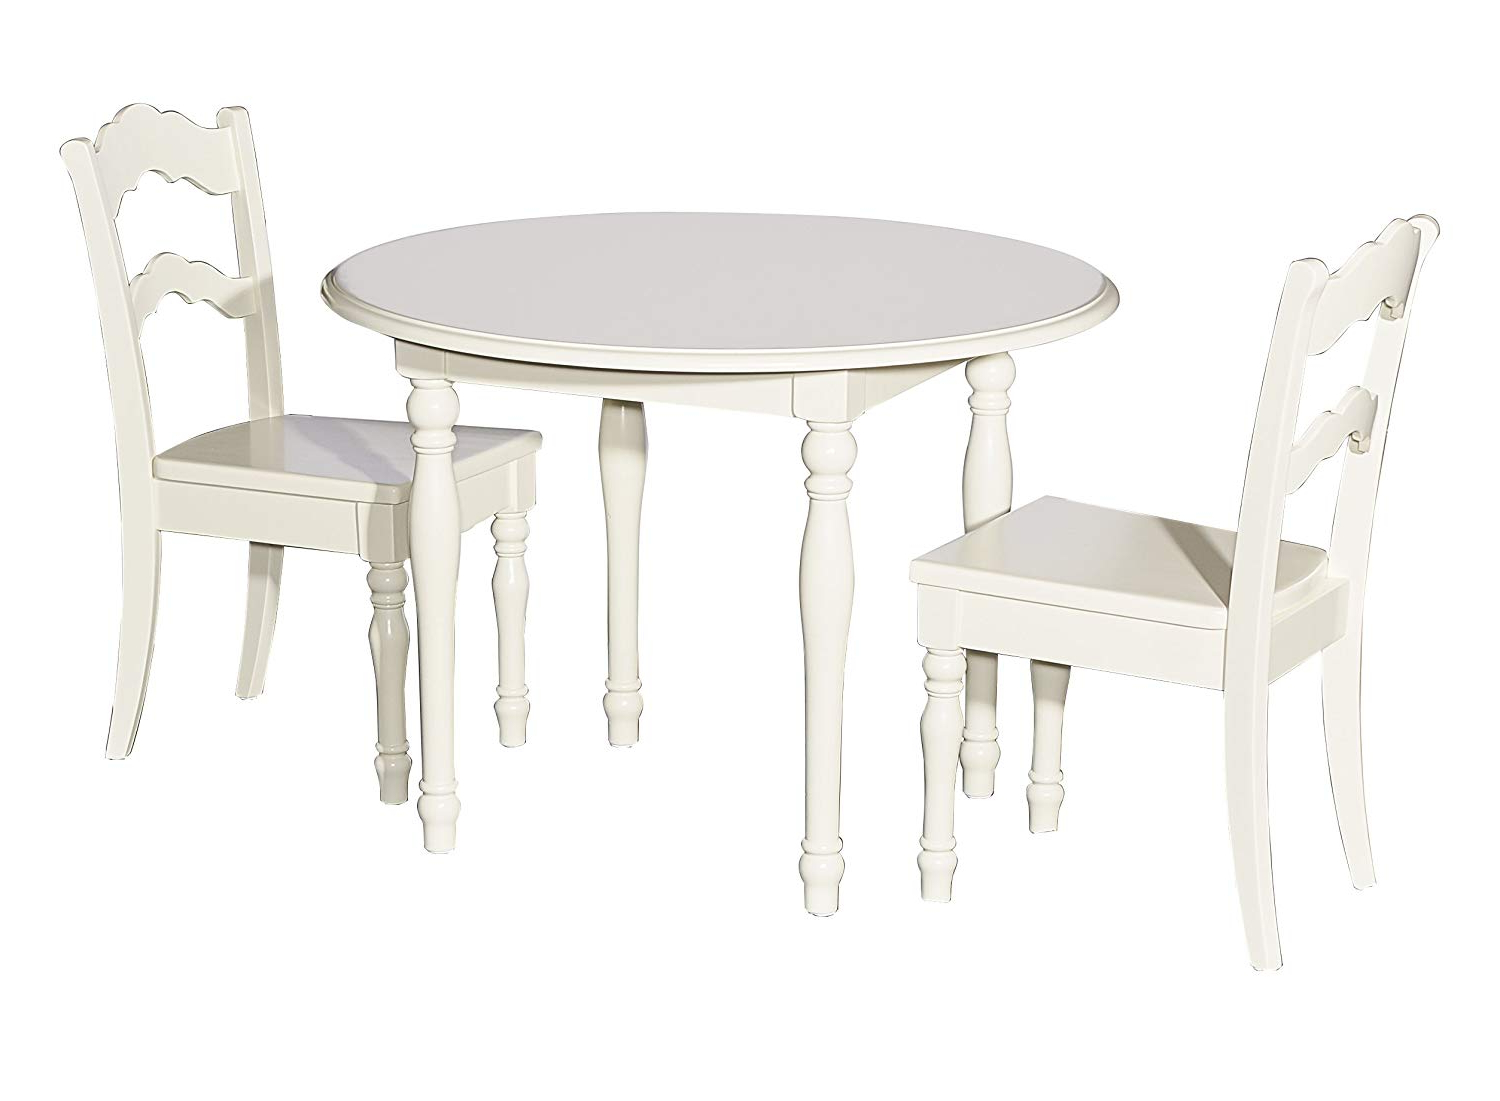 Well Liked West Hill Family Table 3 Piece Dining Sets With Regard To Powell Furniture 16y1004 Table And 2 Chairs, Cream Youth (View 20 of 20)